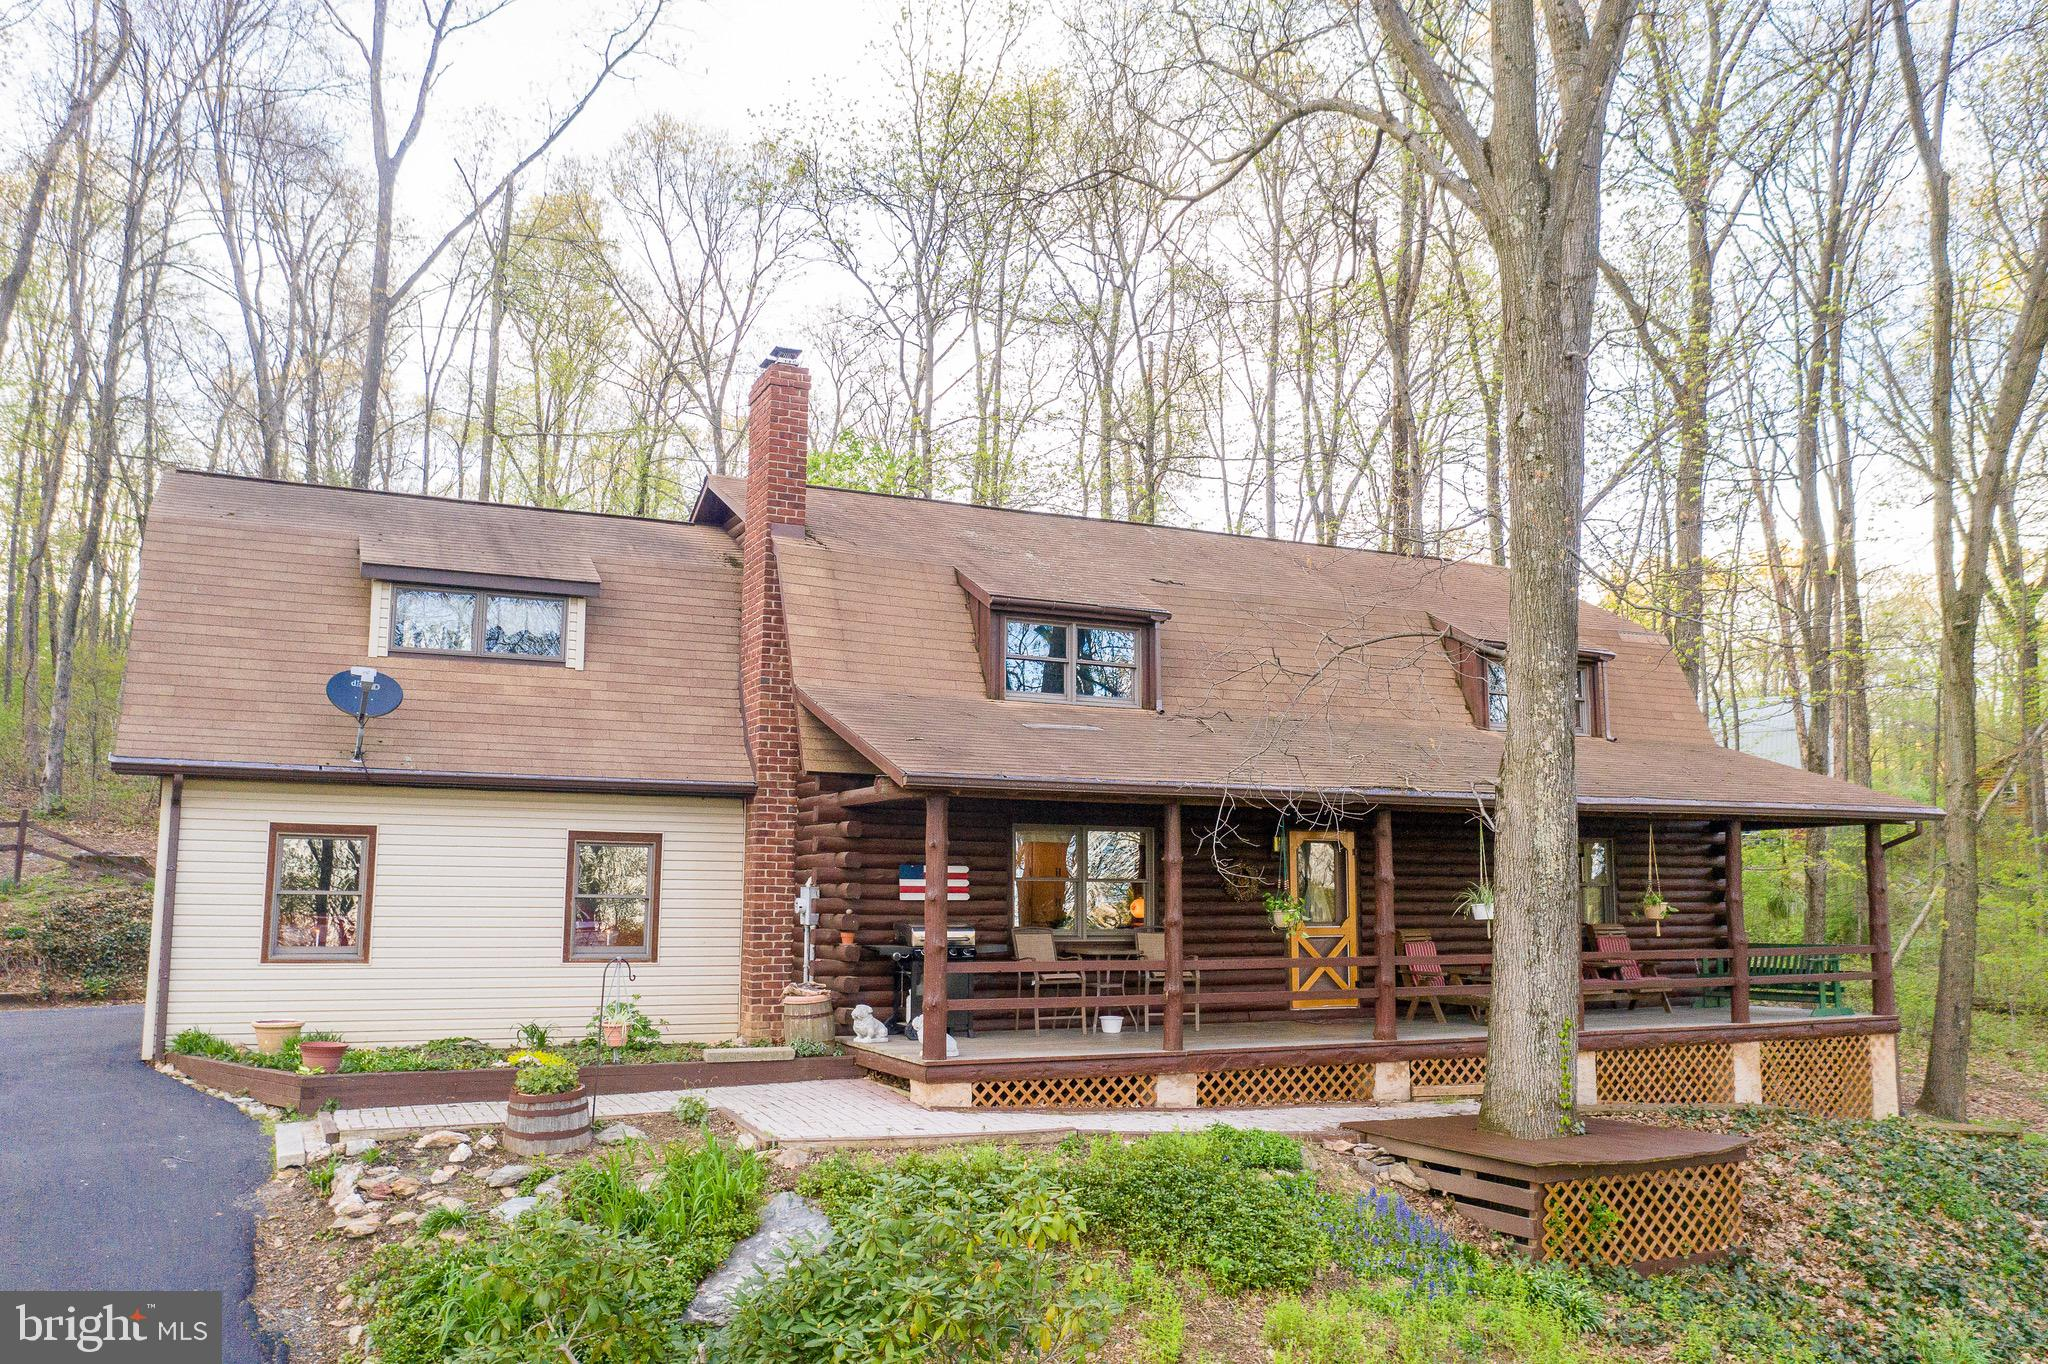 1347 HOLTWOOD ROAD, HOLTWOOD, PA 17532